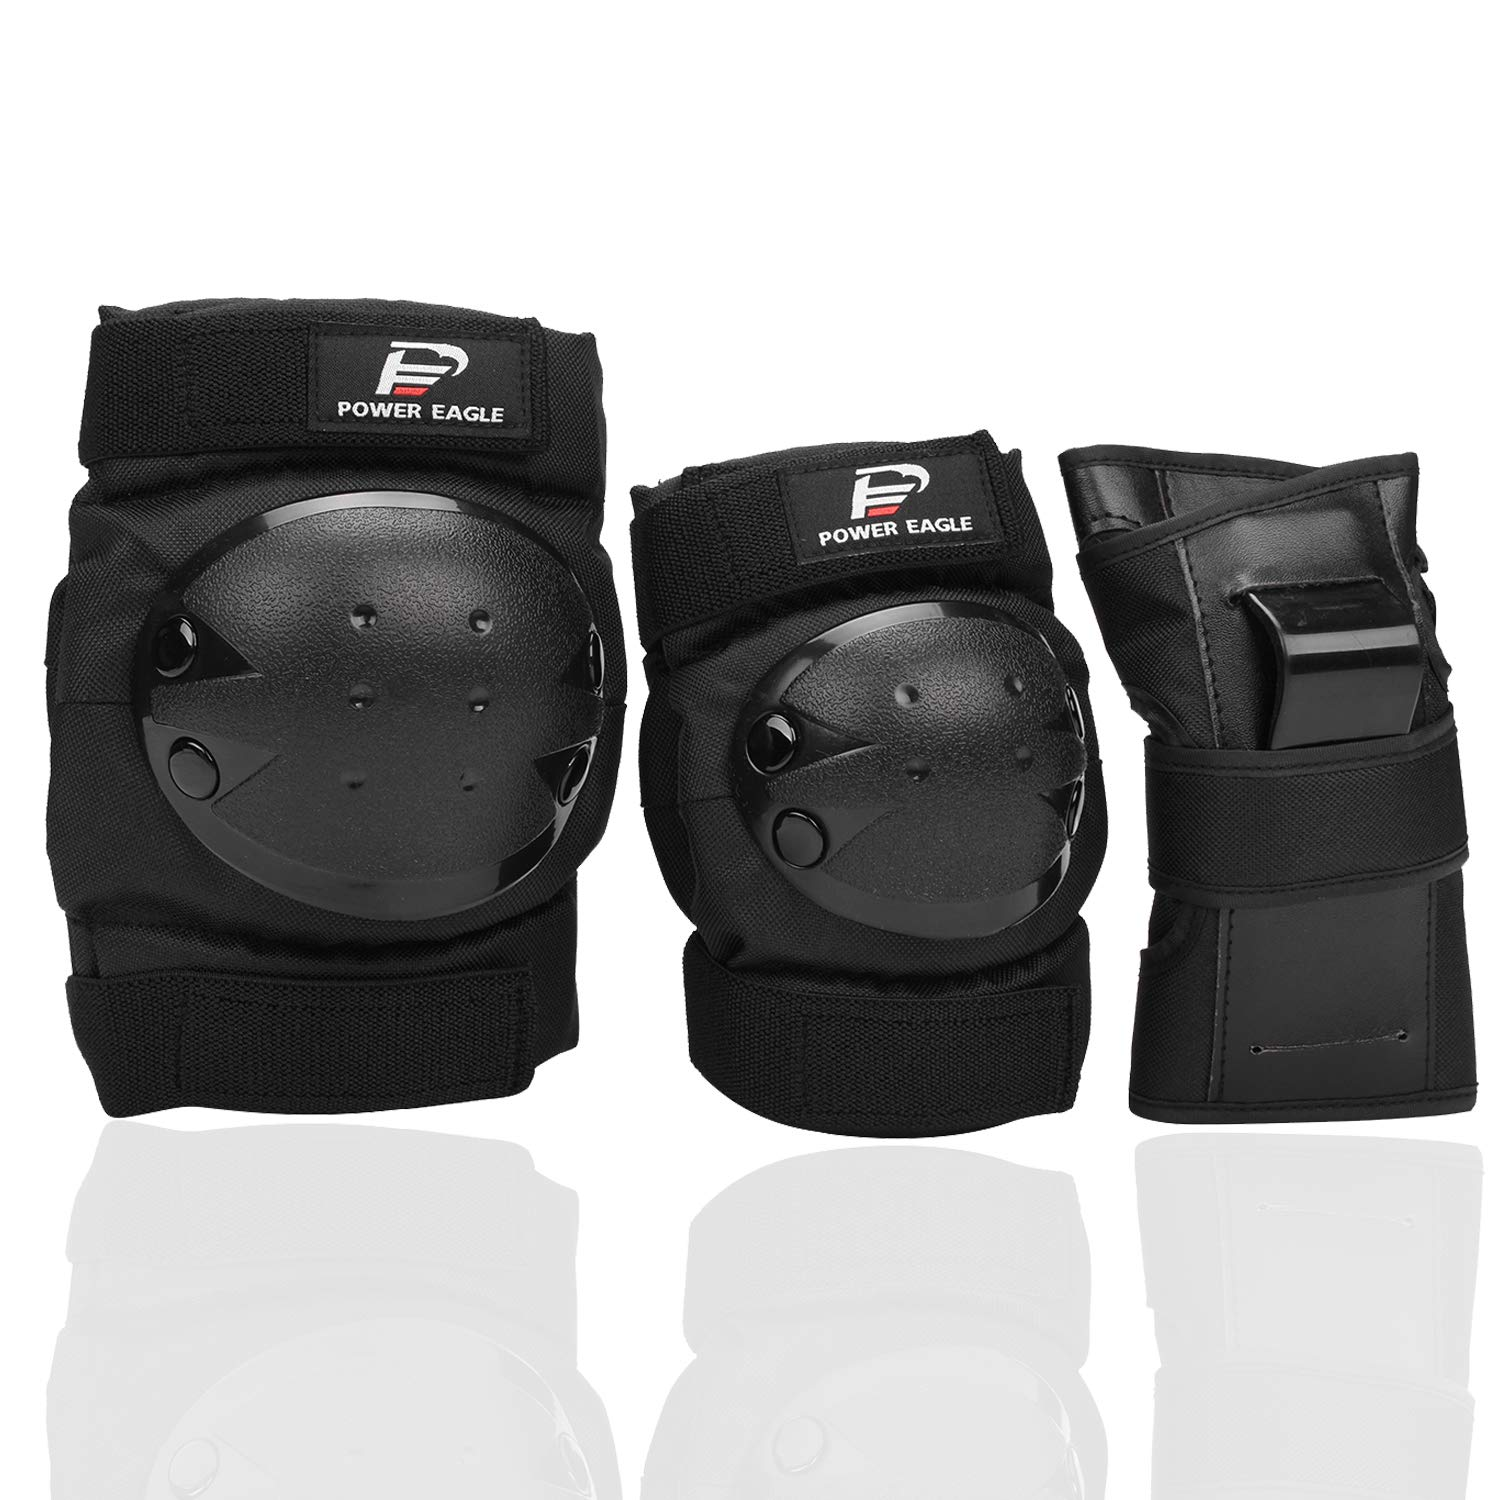 Power Eagle Kids Adults Knee Pads and Elbow Pads with Wrist Guards Protective Gear Suit for: Scooter, Skateboard, Bicycle, Snowboard, Inline Skating, Roller Skating Safety Protection (Black, X-Small)